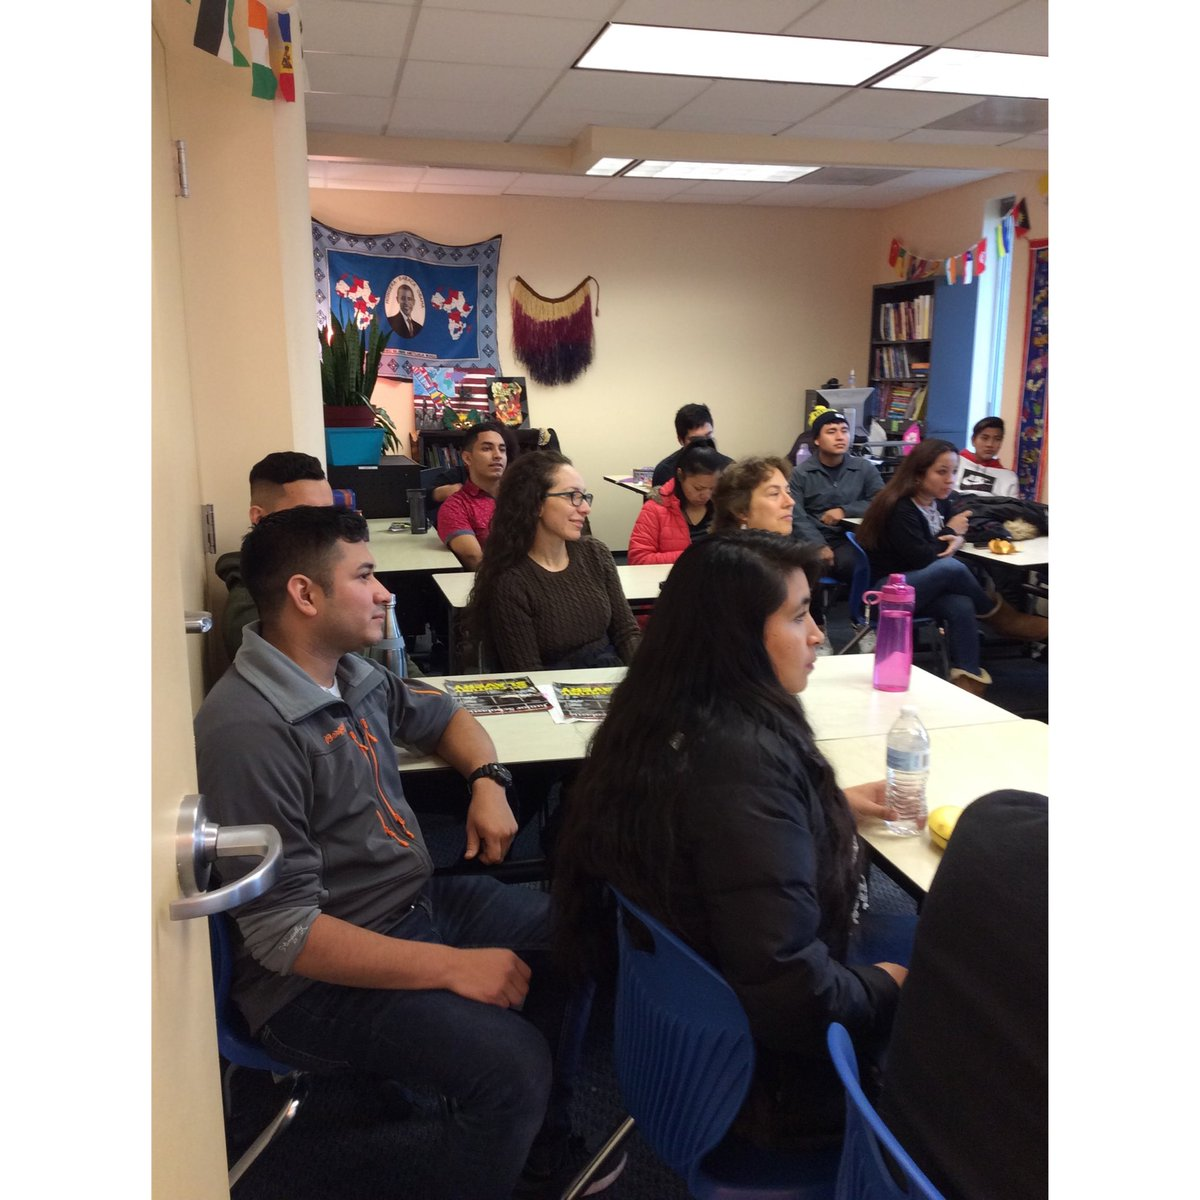 EL and ELA classes listen to powerful presentation on themes in the book Sold, Thanks to Senior Labor Analyst Sheela Ahluwalia!<a target='_blank' href='http://search.twitter.com/search?q=ACHSMavericks'><a target='_blank' href='https://twitter.com/hashtag/ACHSMavericks?src=hash'>#ACHSMavericks</a></a> <a target='_blank' href='https://t.co/Wt5LSou2ea'>https://t.co/Wt5LSou2ea</a>